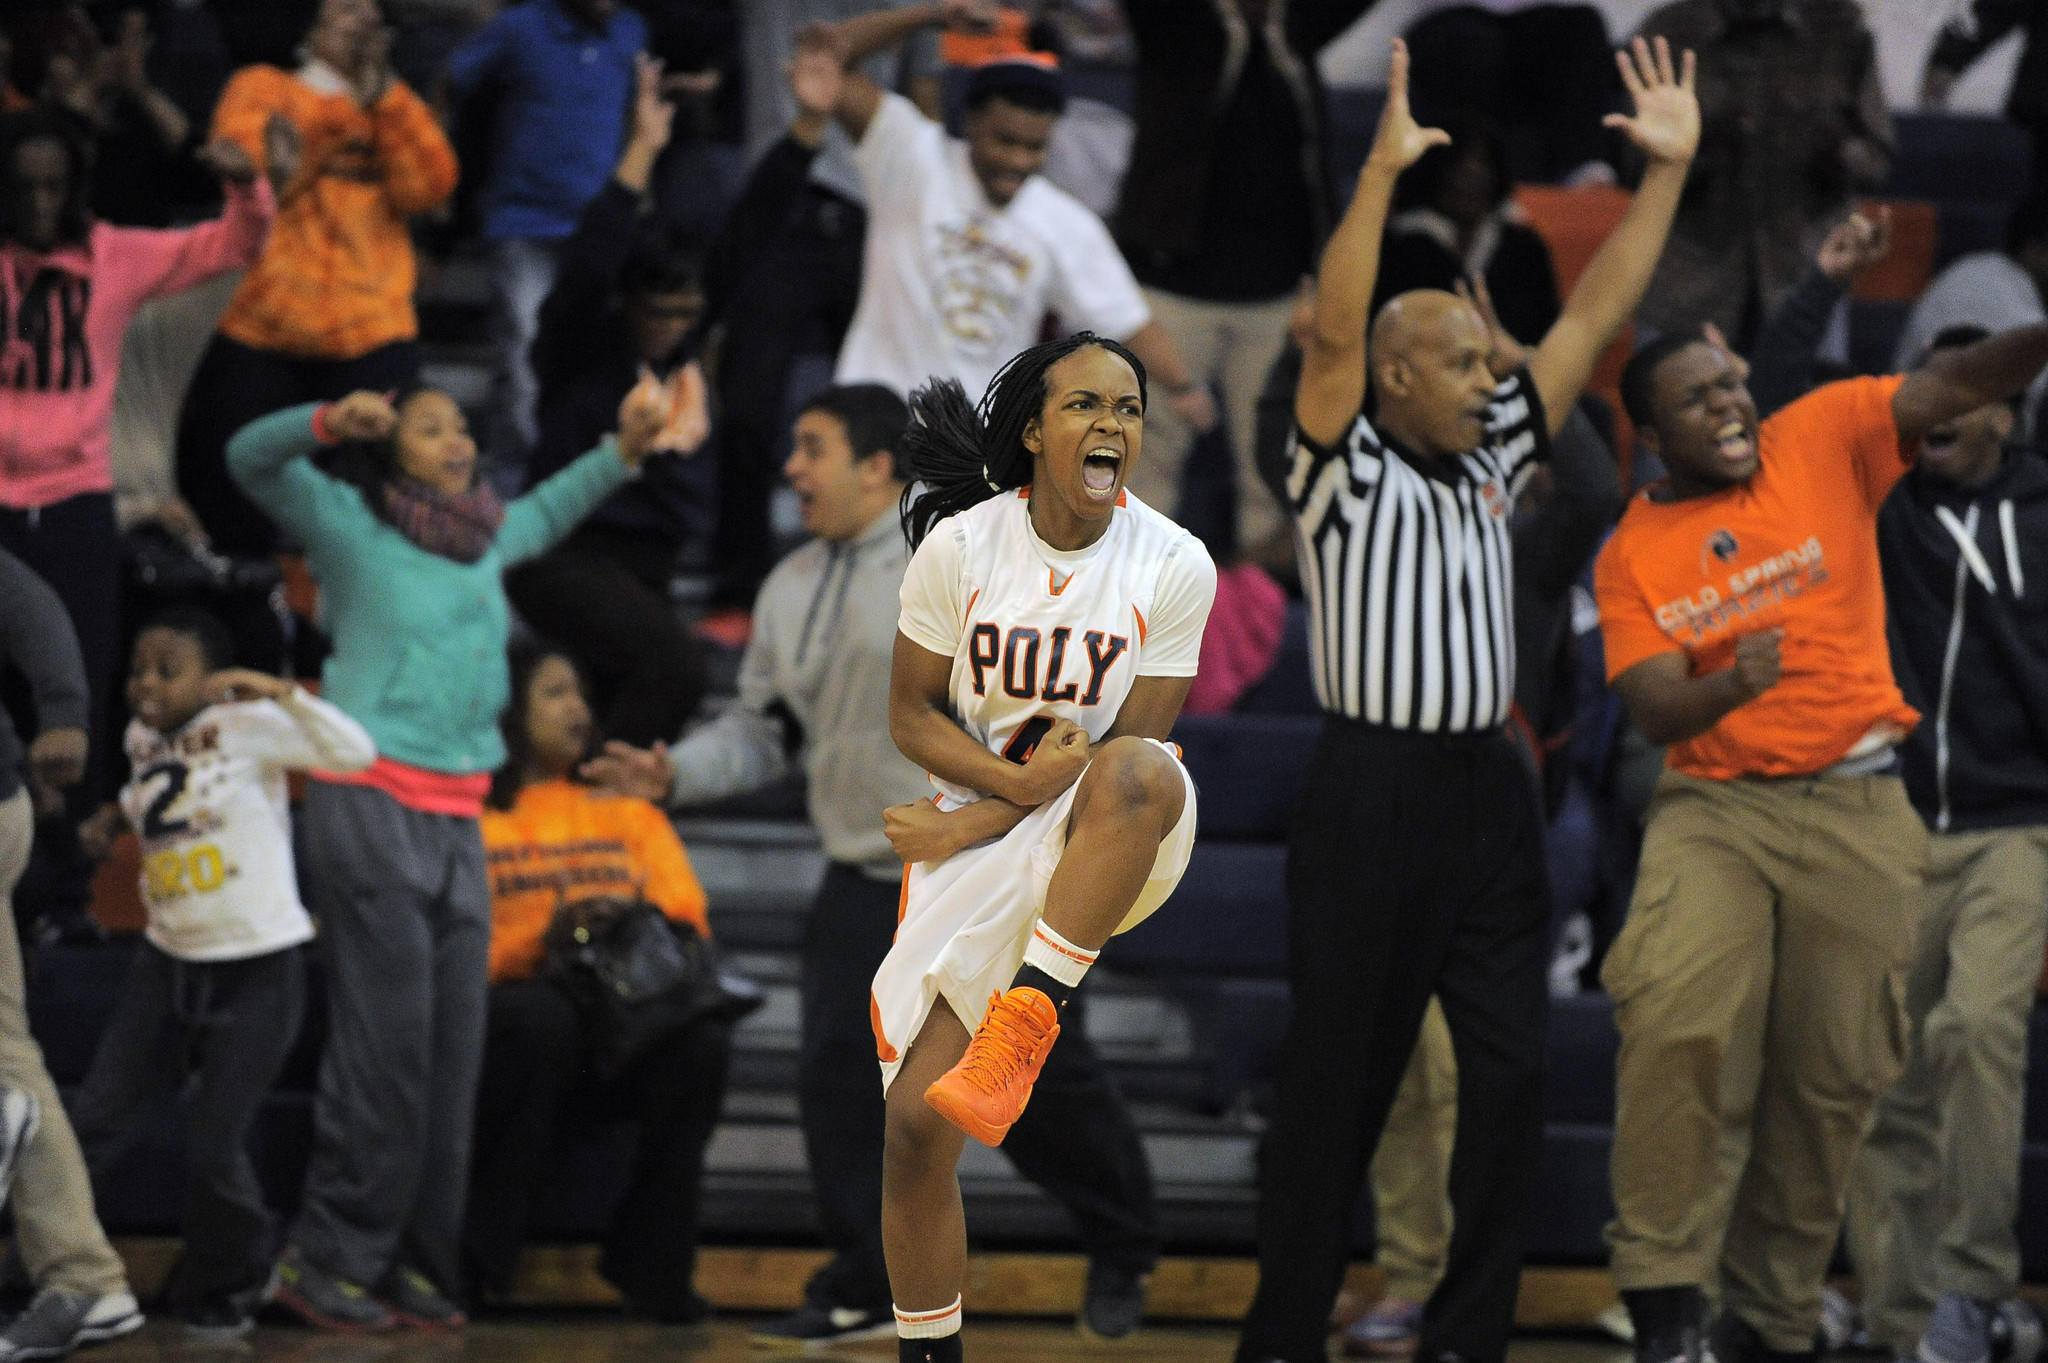 The home crowd goes wild behind Poly guard Jasmine Smith, who reacts after draining a buzzer-beating 3-point basket to tie City Knights during a Class 3A East Section I final.